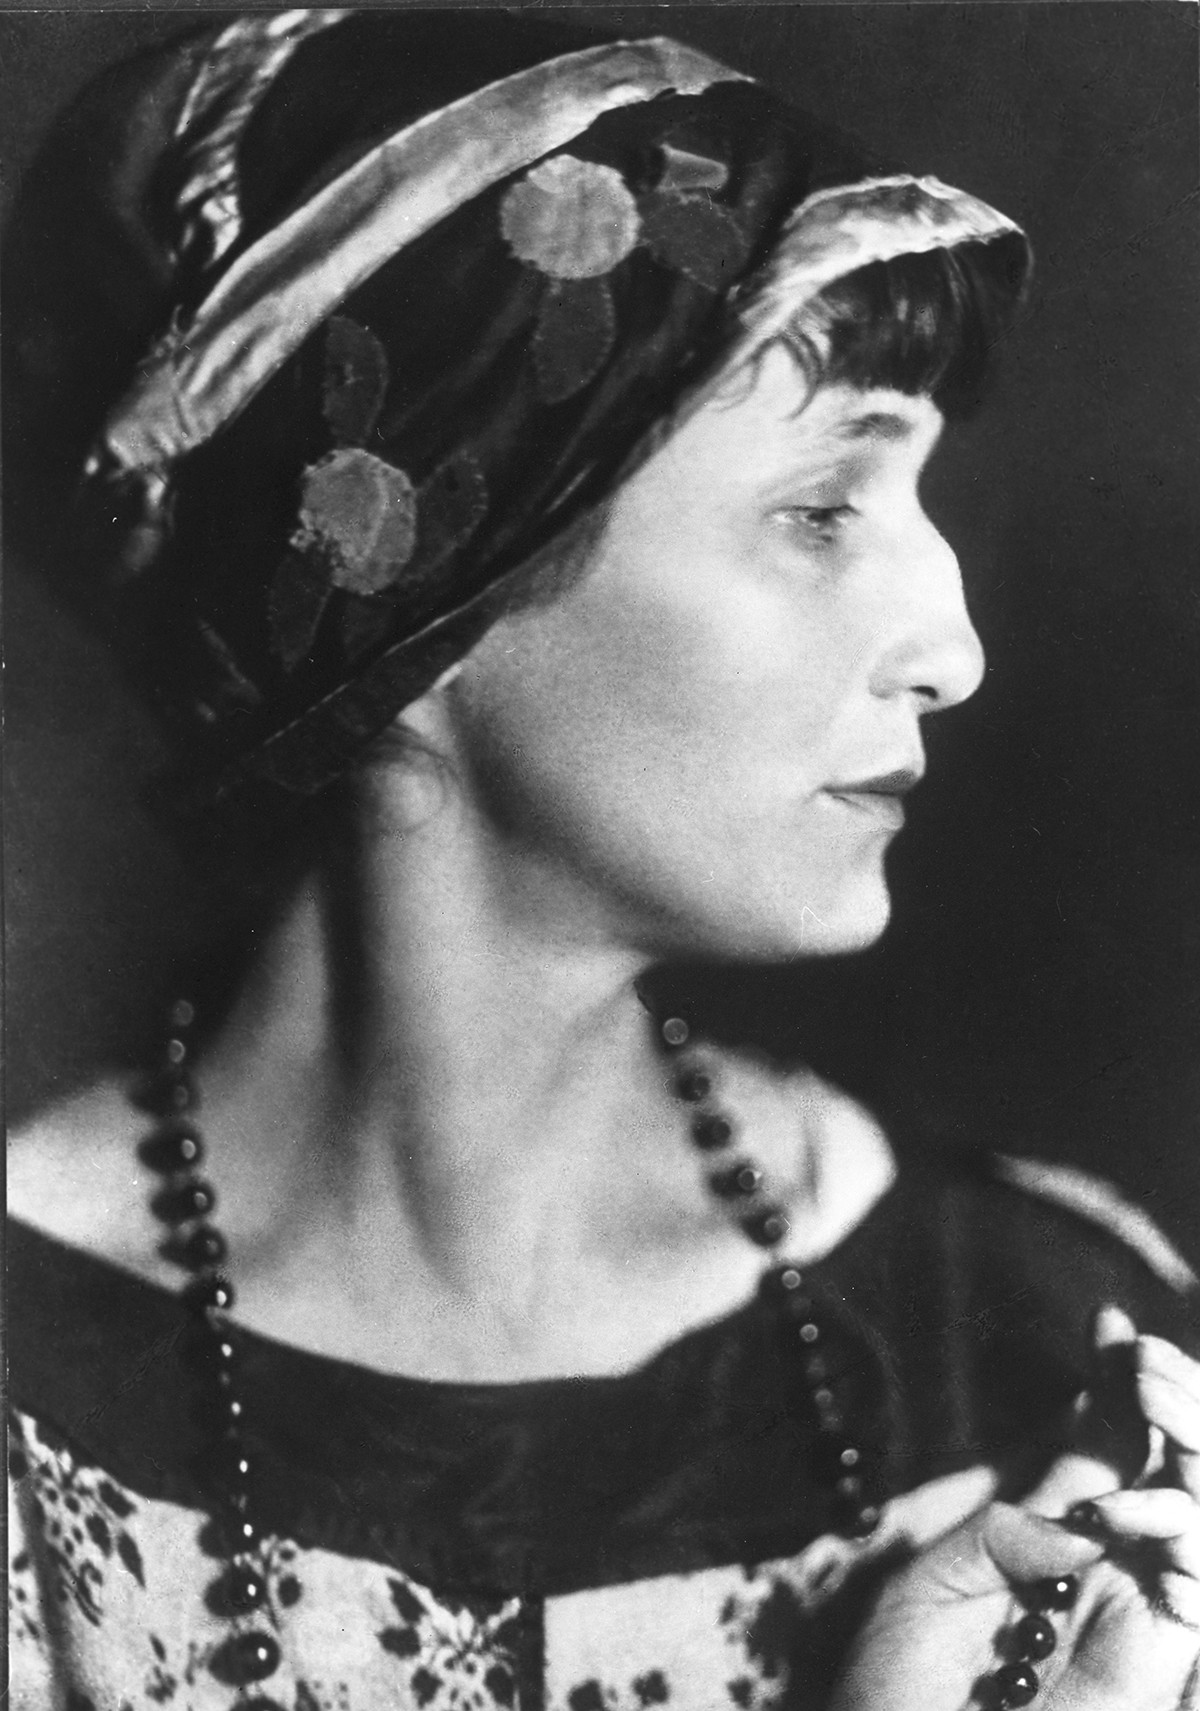 Her famous 'Requiem' poem made Akhmatova the rare voice for the downtrodden.